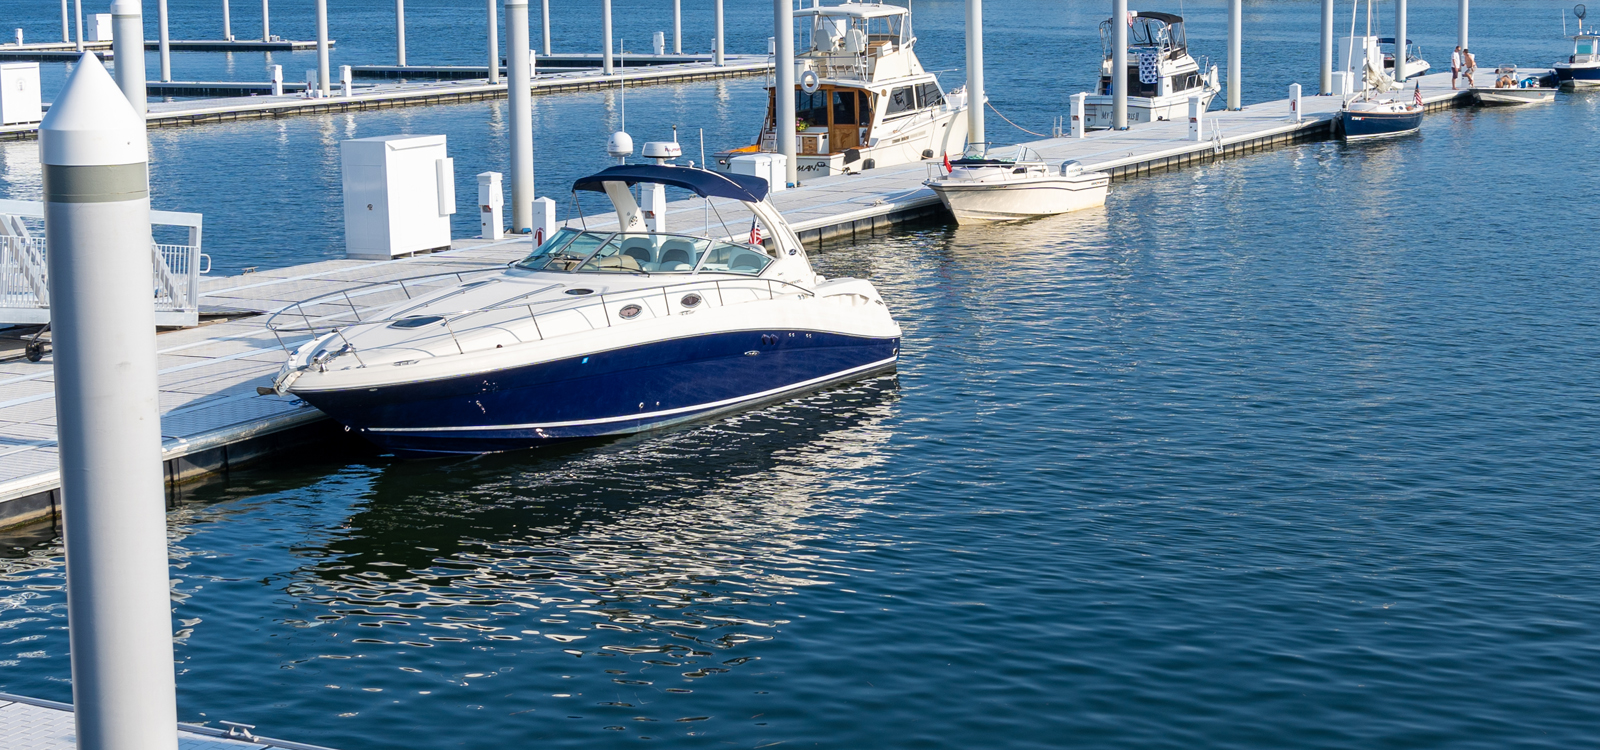 A white and blue boat docked at Bridgeport Harbor Marina